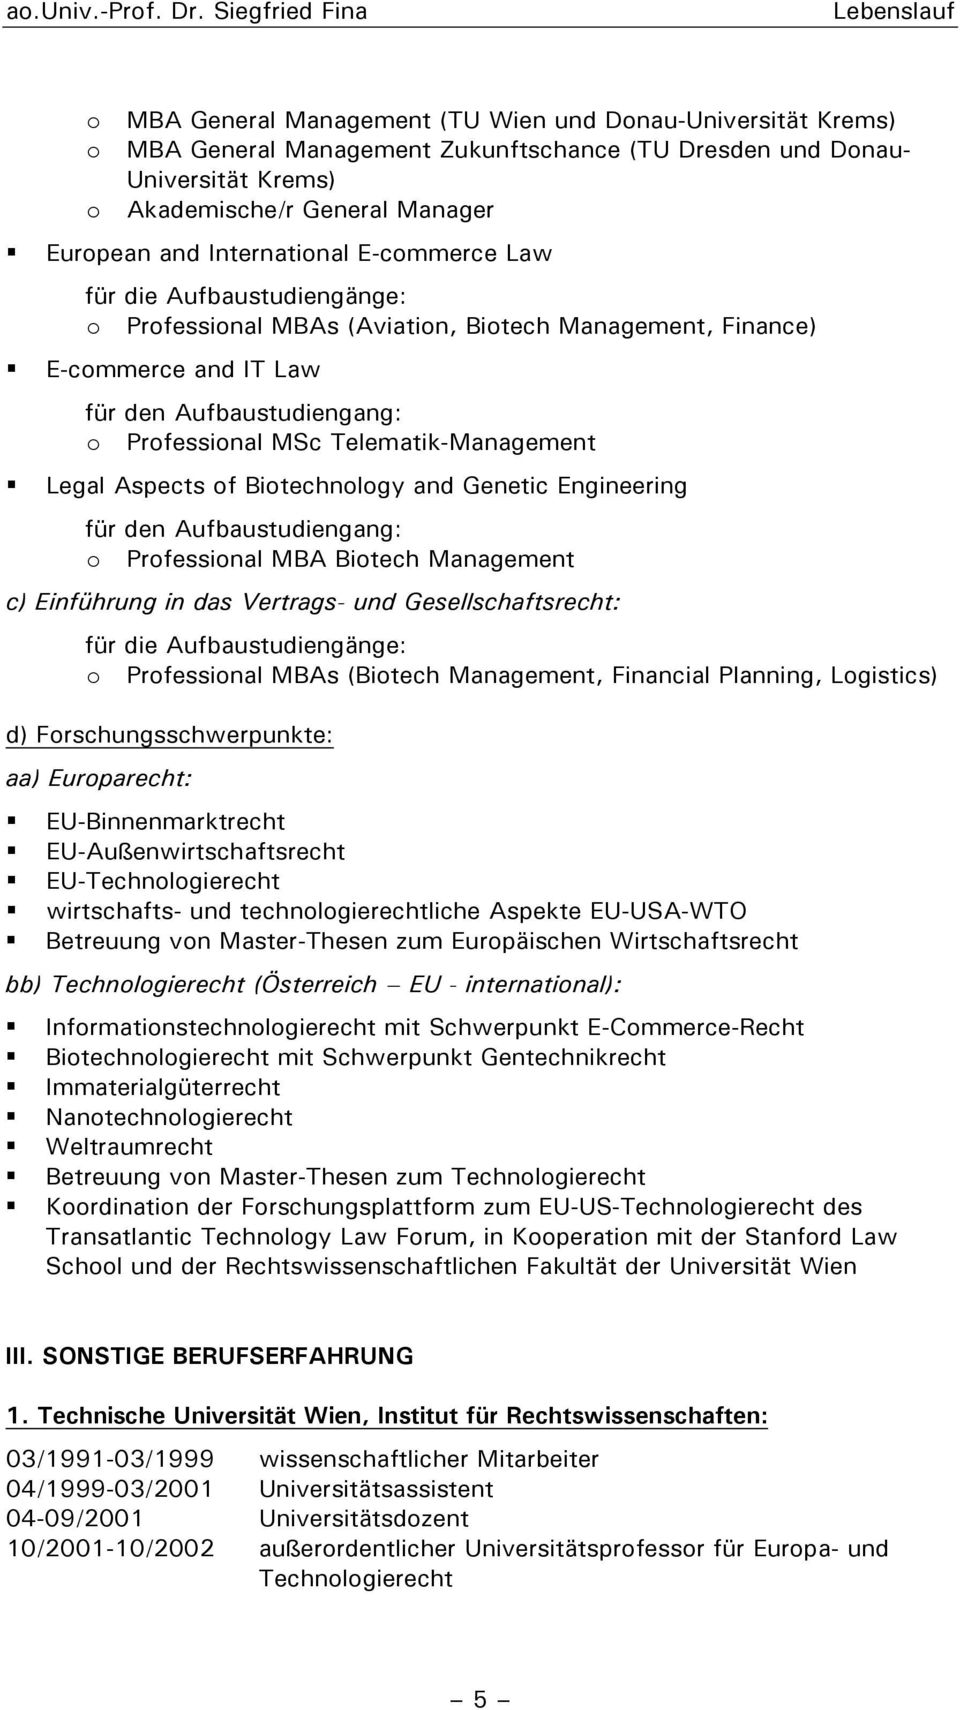 Biotechnology and Genetic Engineering für den Aufbaustudiengang: o Professional MBA Biotech Management c) Einführung in das Vertrags- und Gesellschaftsrecht: o Professional MBAs (Biotech Management,